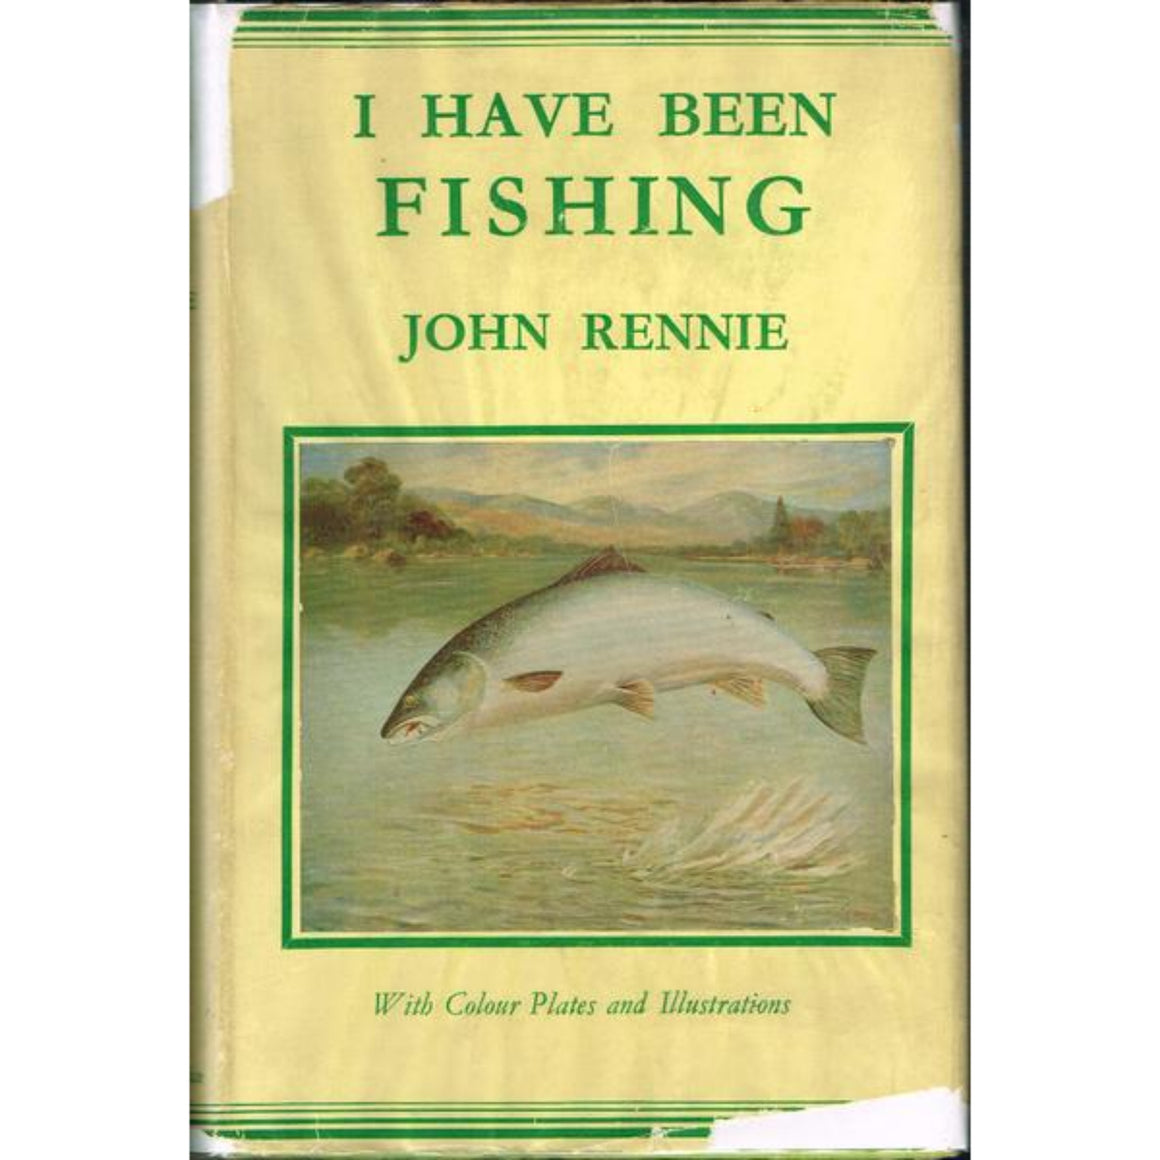 'I Have Been Fishing' by John Rennie